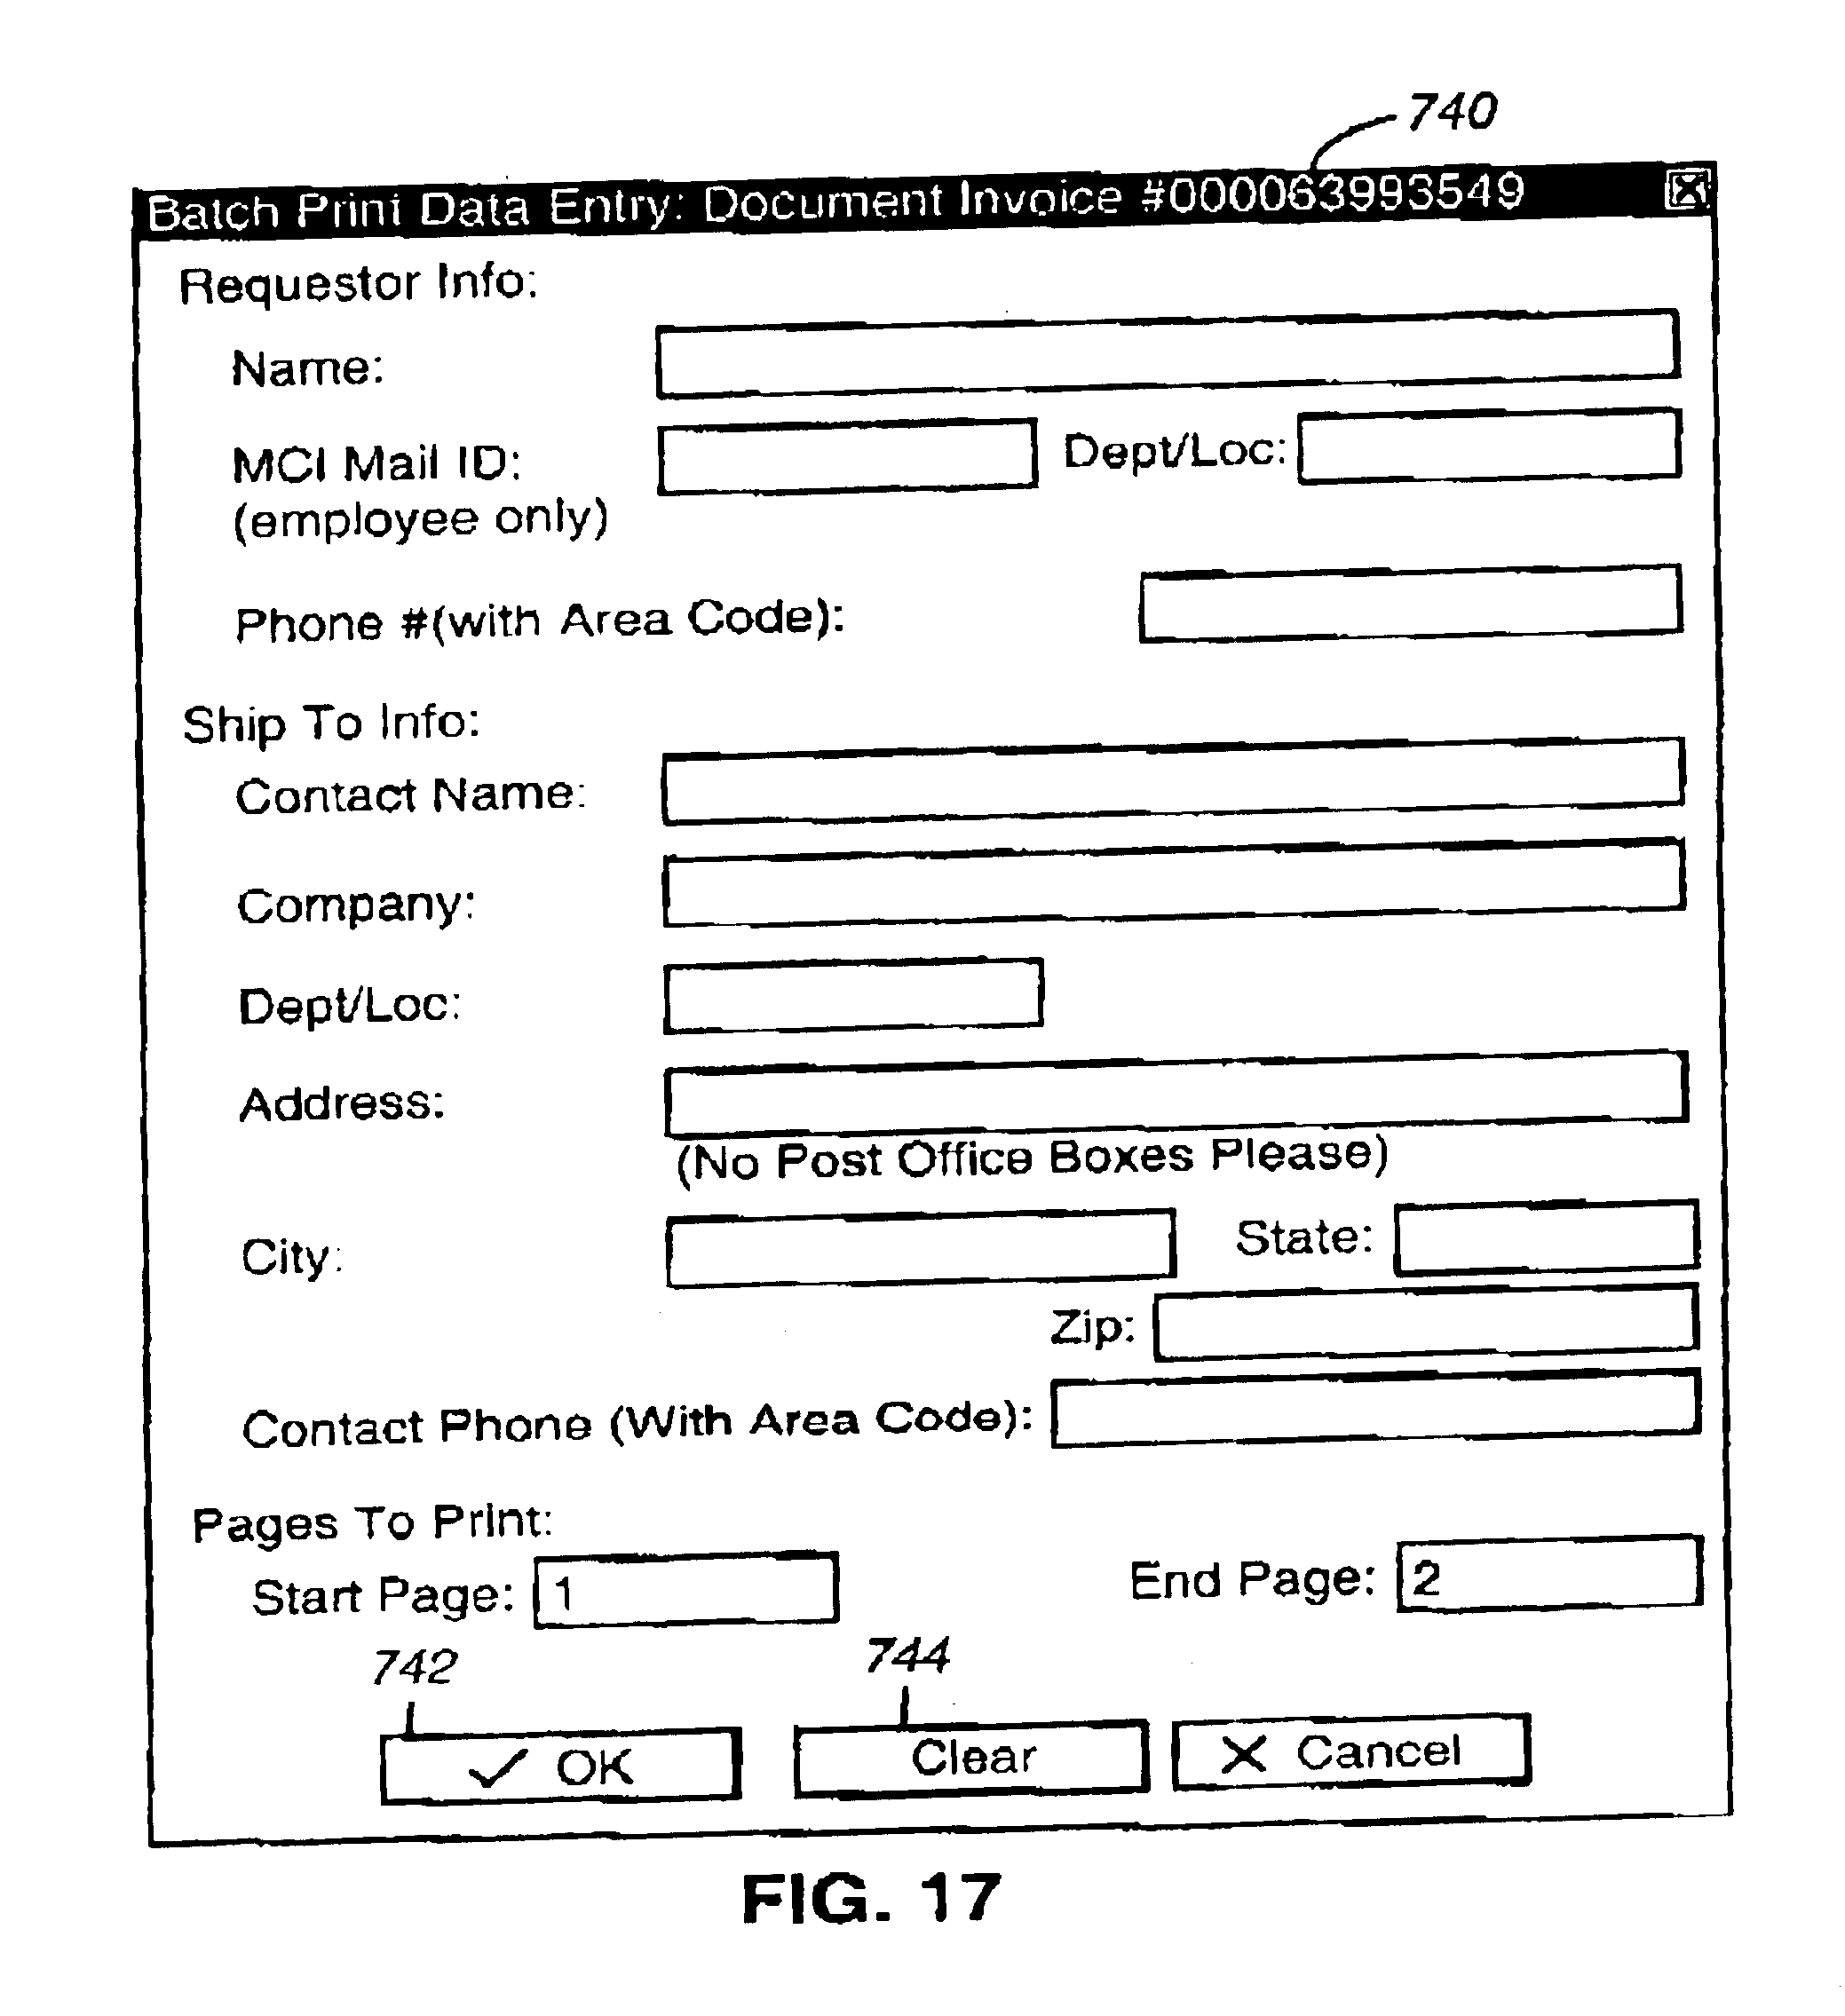 Charitable Donation Receipt Word Patent Us  Web Based Integrated Customer Interface For  Self Employed Invoices Pdf with Sample Receipt For Money Received Word Patent Drawing Irs Gross Receipts Excel